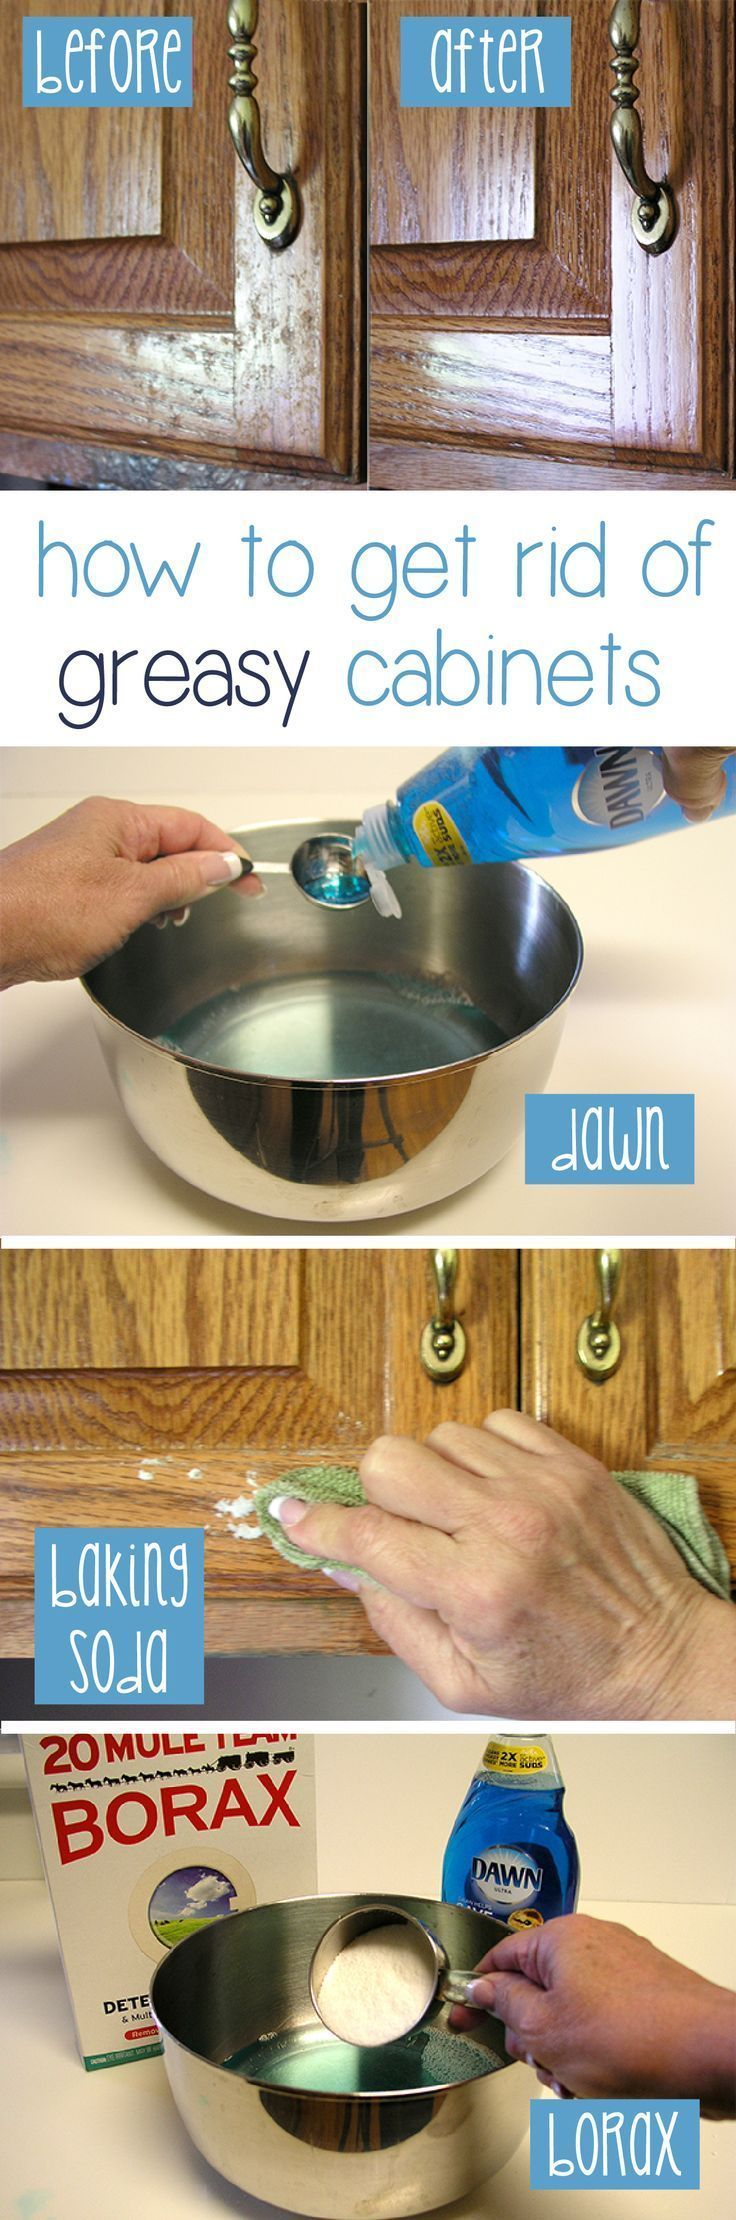 How to Clean Grease From Kitchen Cabinet Doors | Kitchens, Kitchen ...